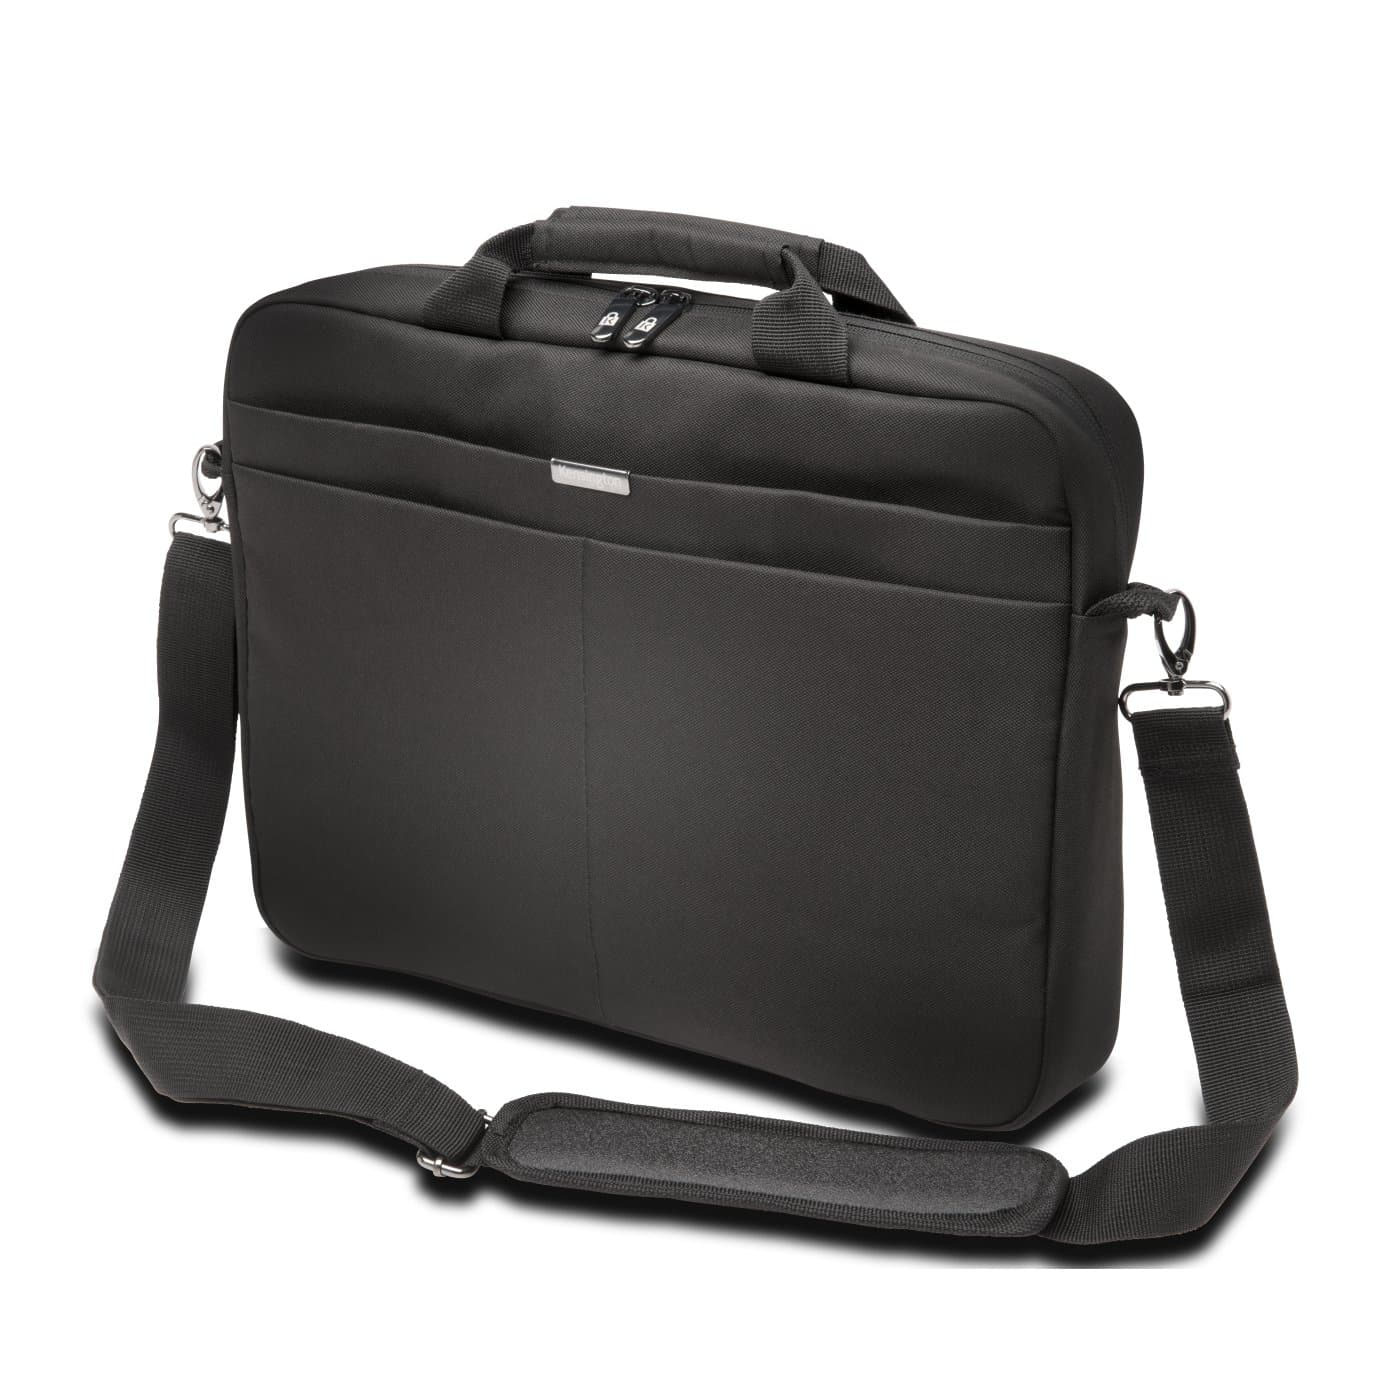 5a8f991b2762 Kensington - Products - Laptop Carry Cases - LS240 Carrying Case —  14.4